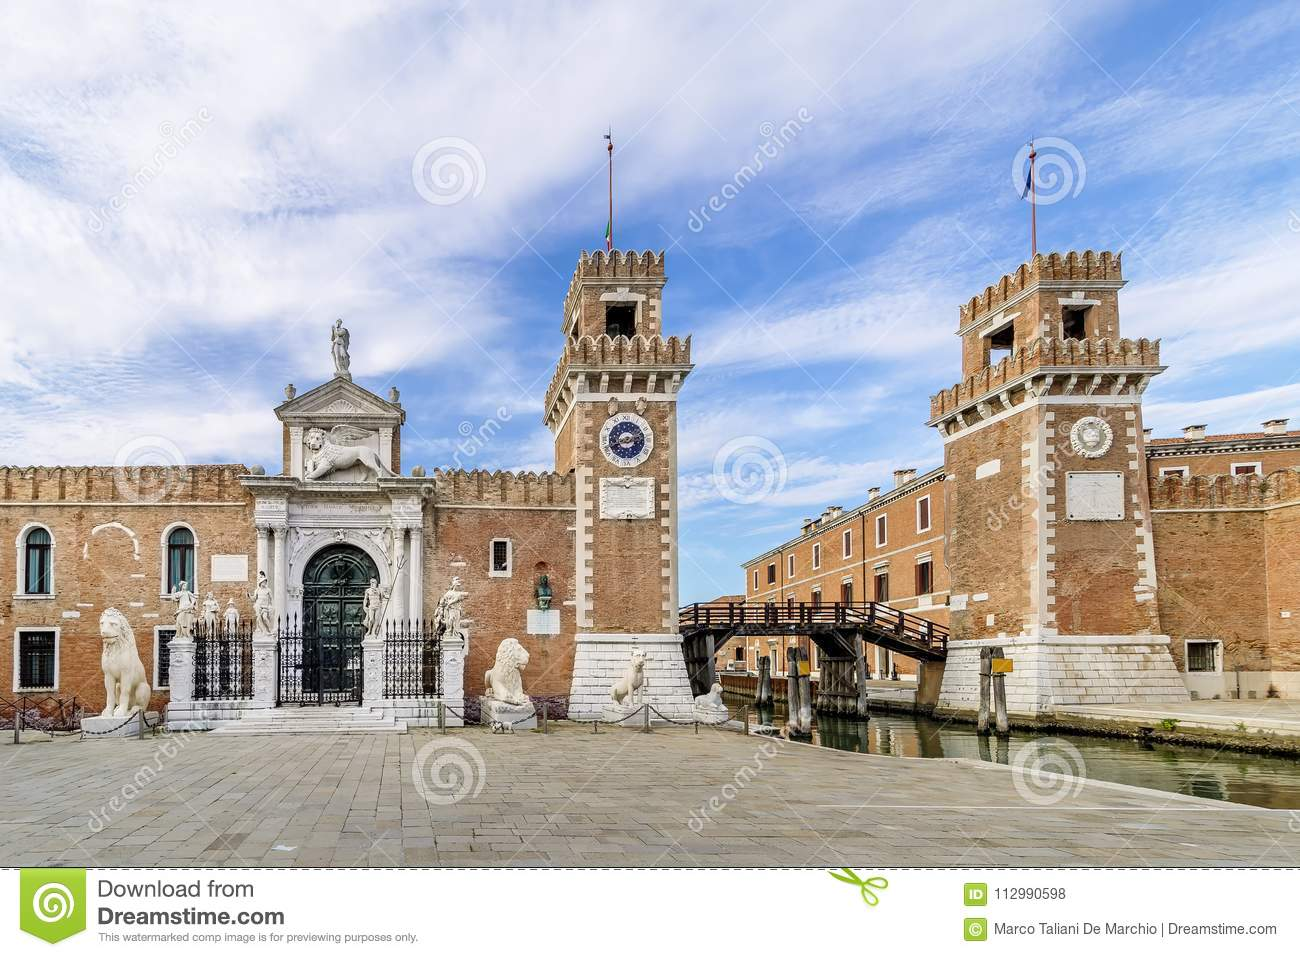 Beautiful view of the towers in the Castello district of Venice, Italy